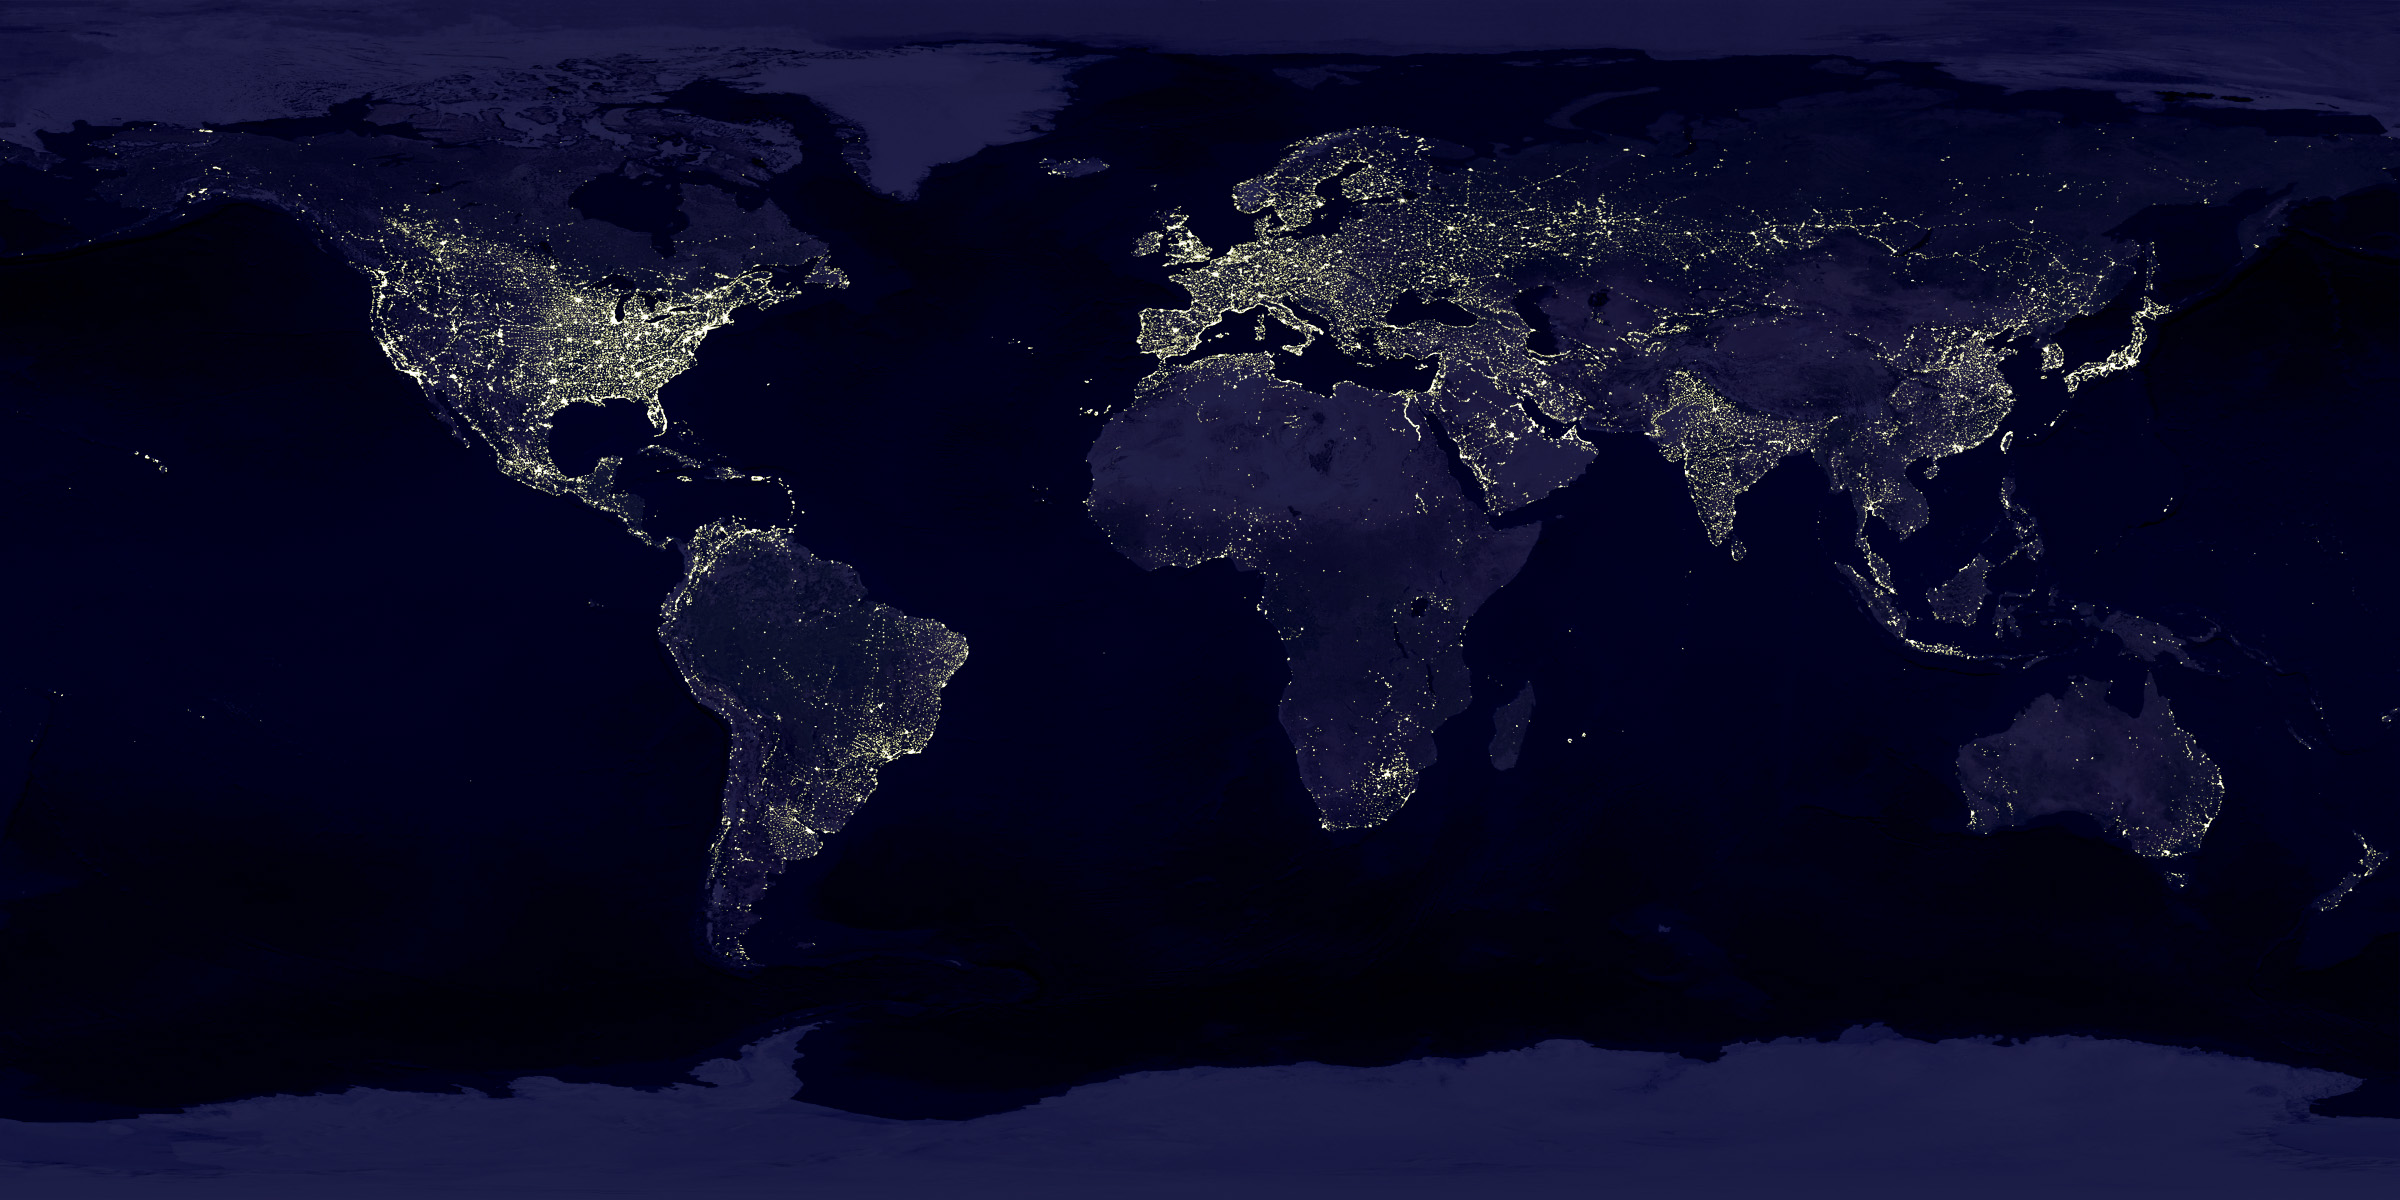 nasa visible earth: earth's city lights